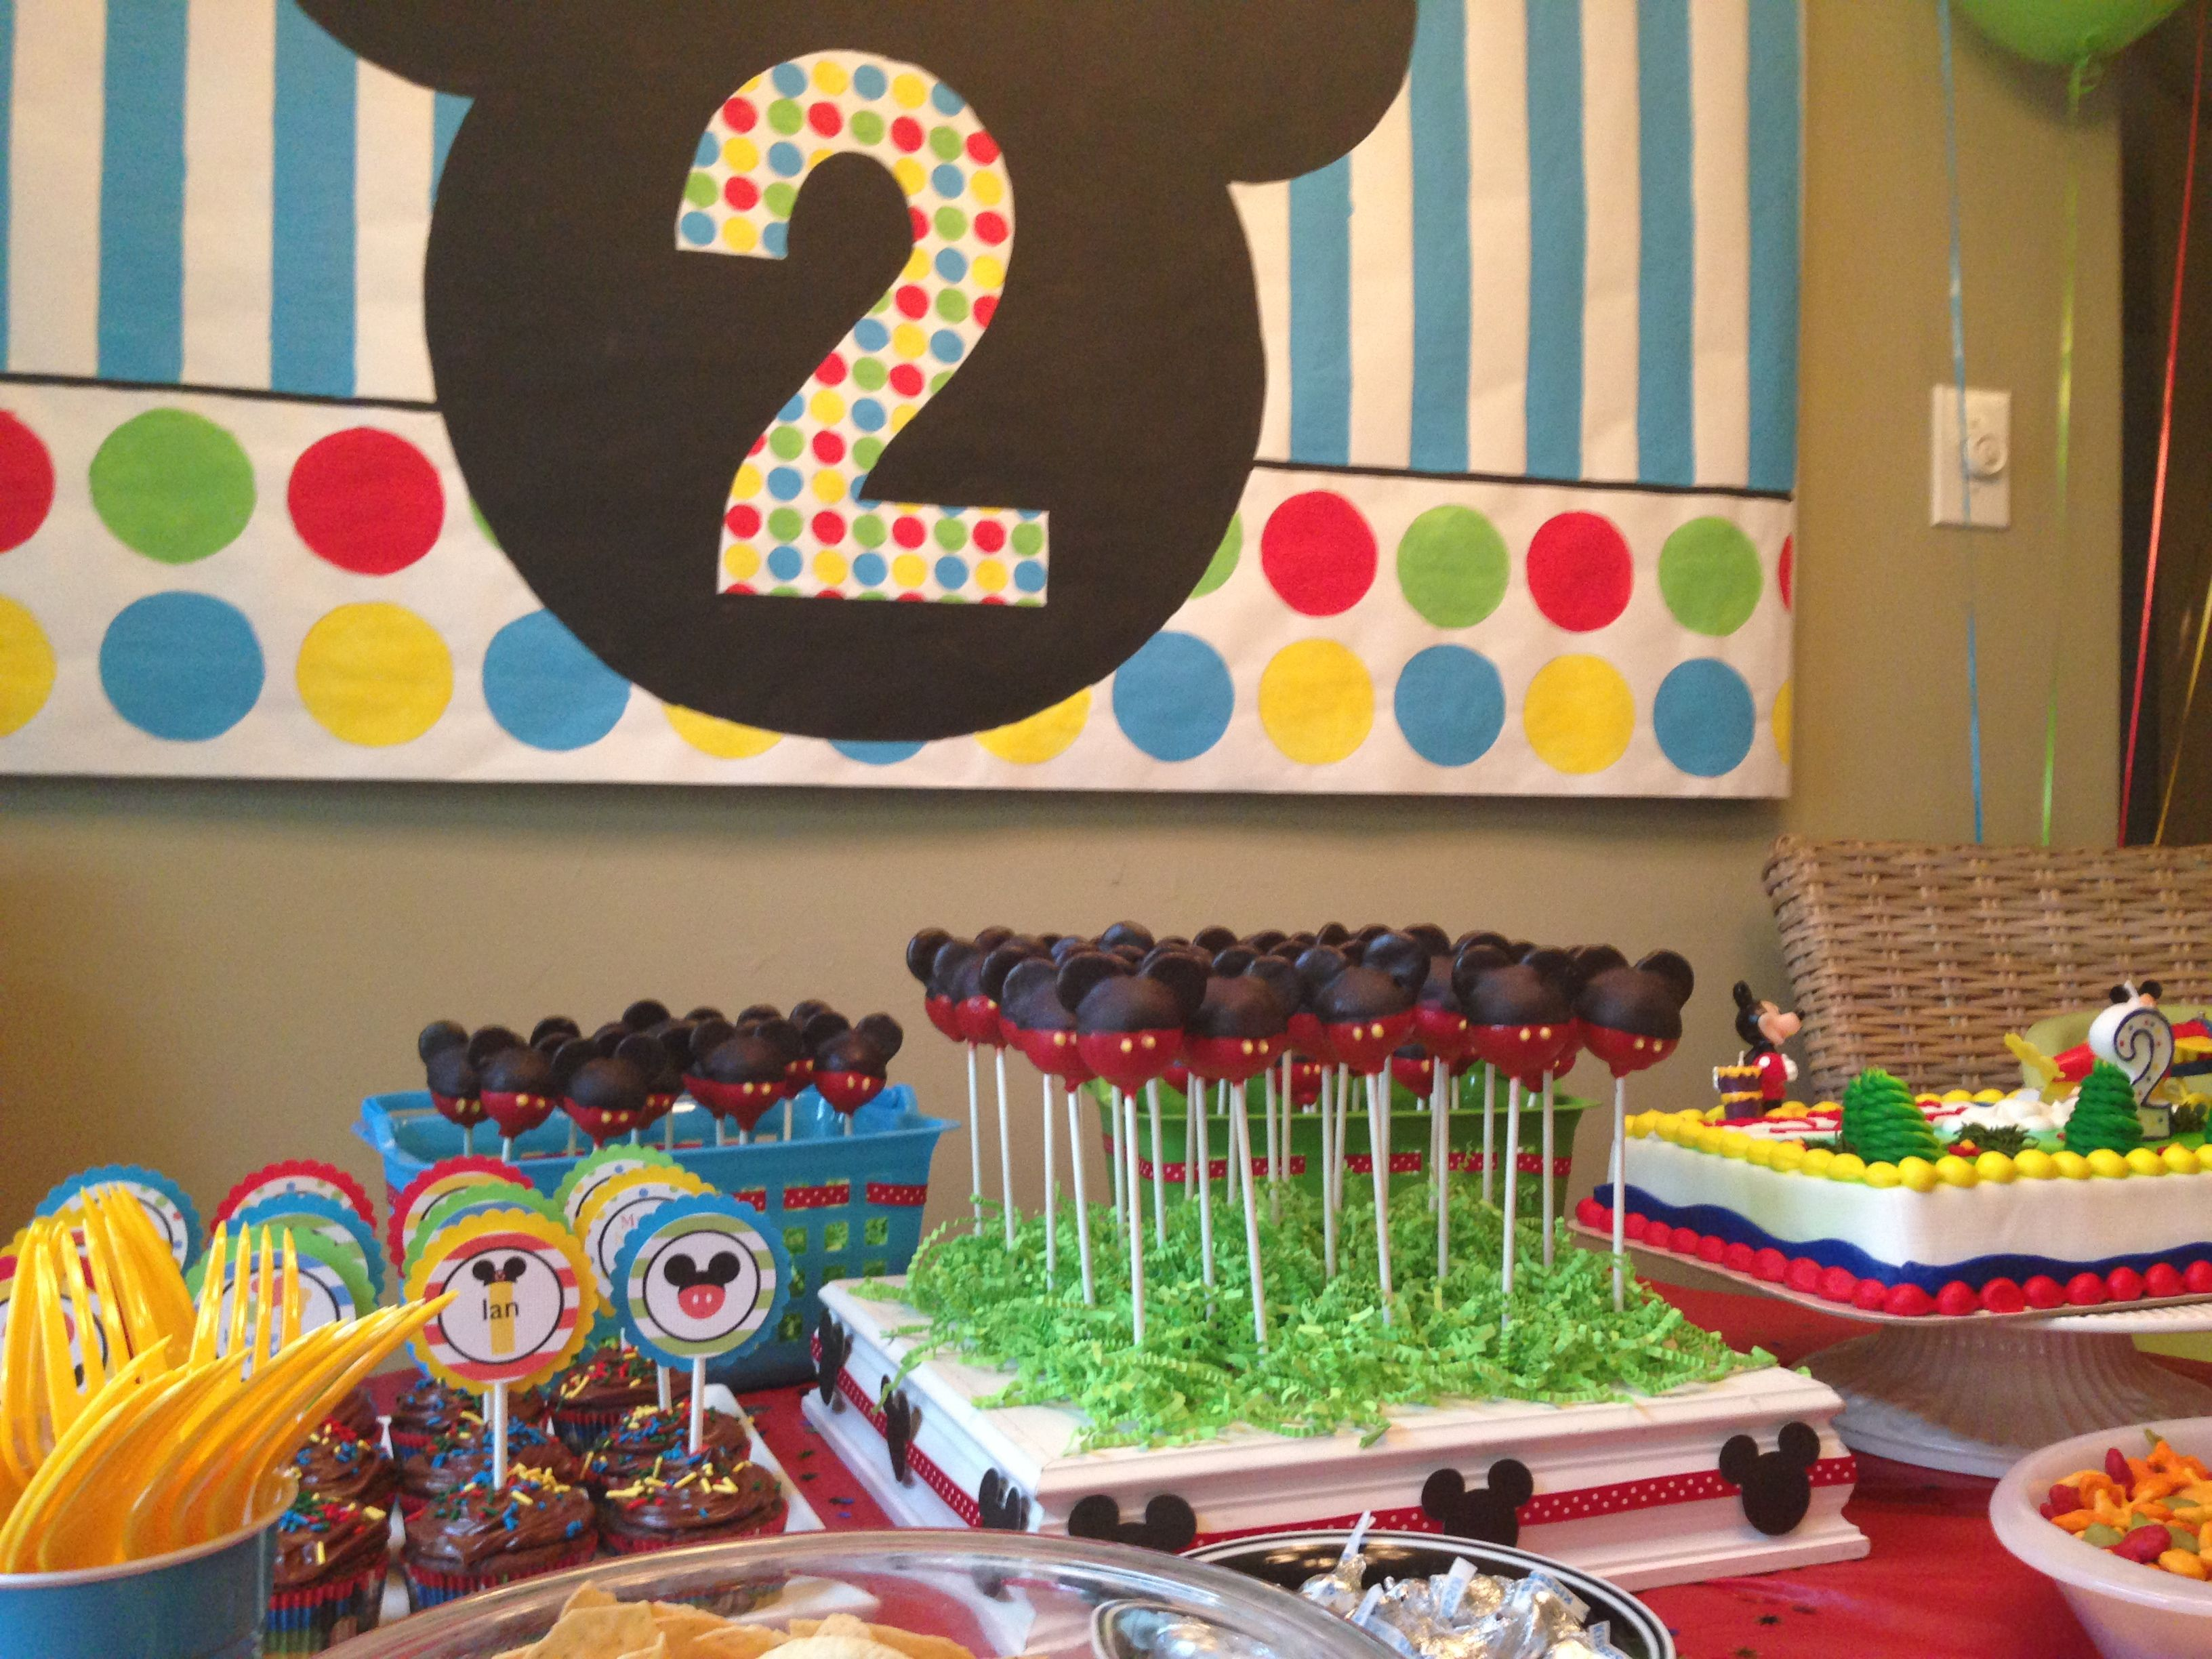 Pin By Nikole Starr Interiors On Party Ideas Birthday Party Places Fun Birthday Party Birthday Party Images